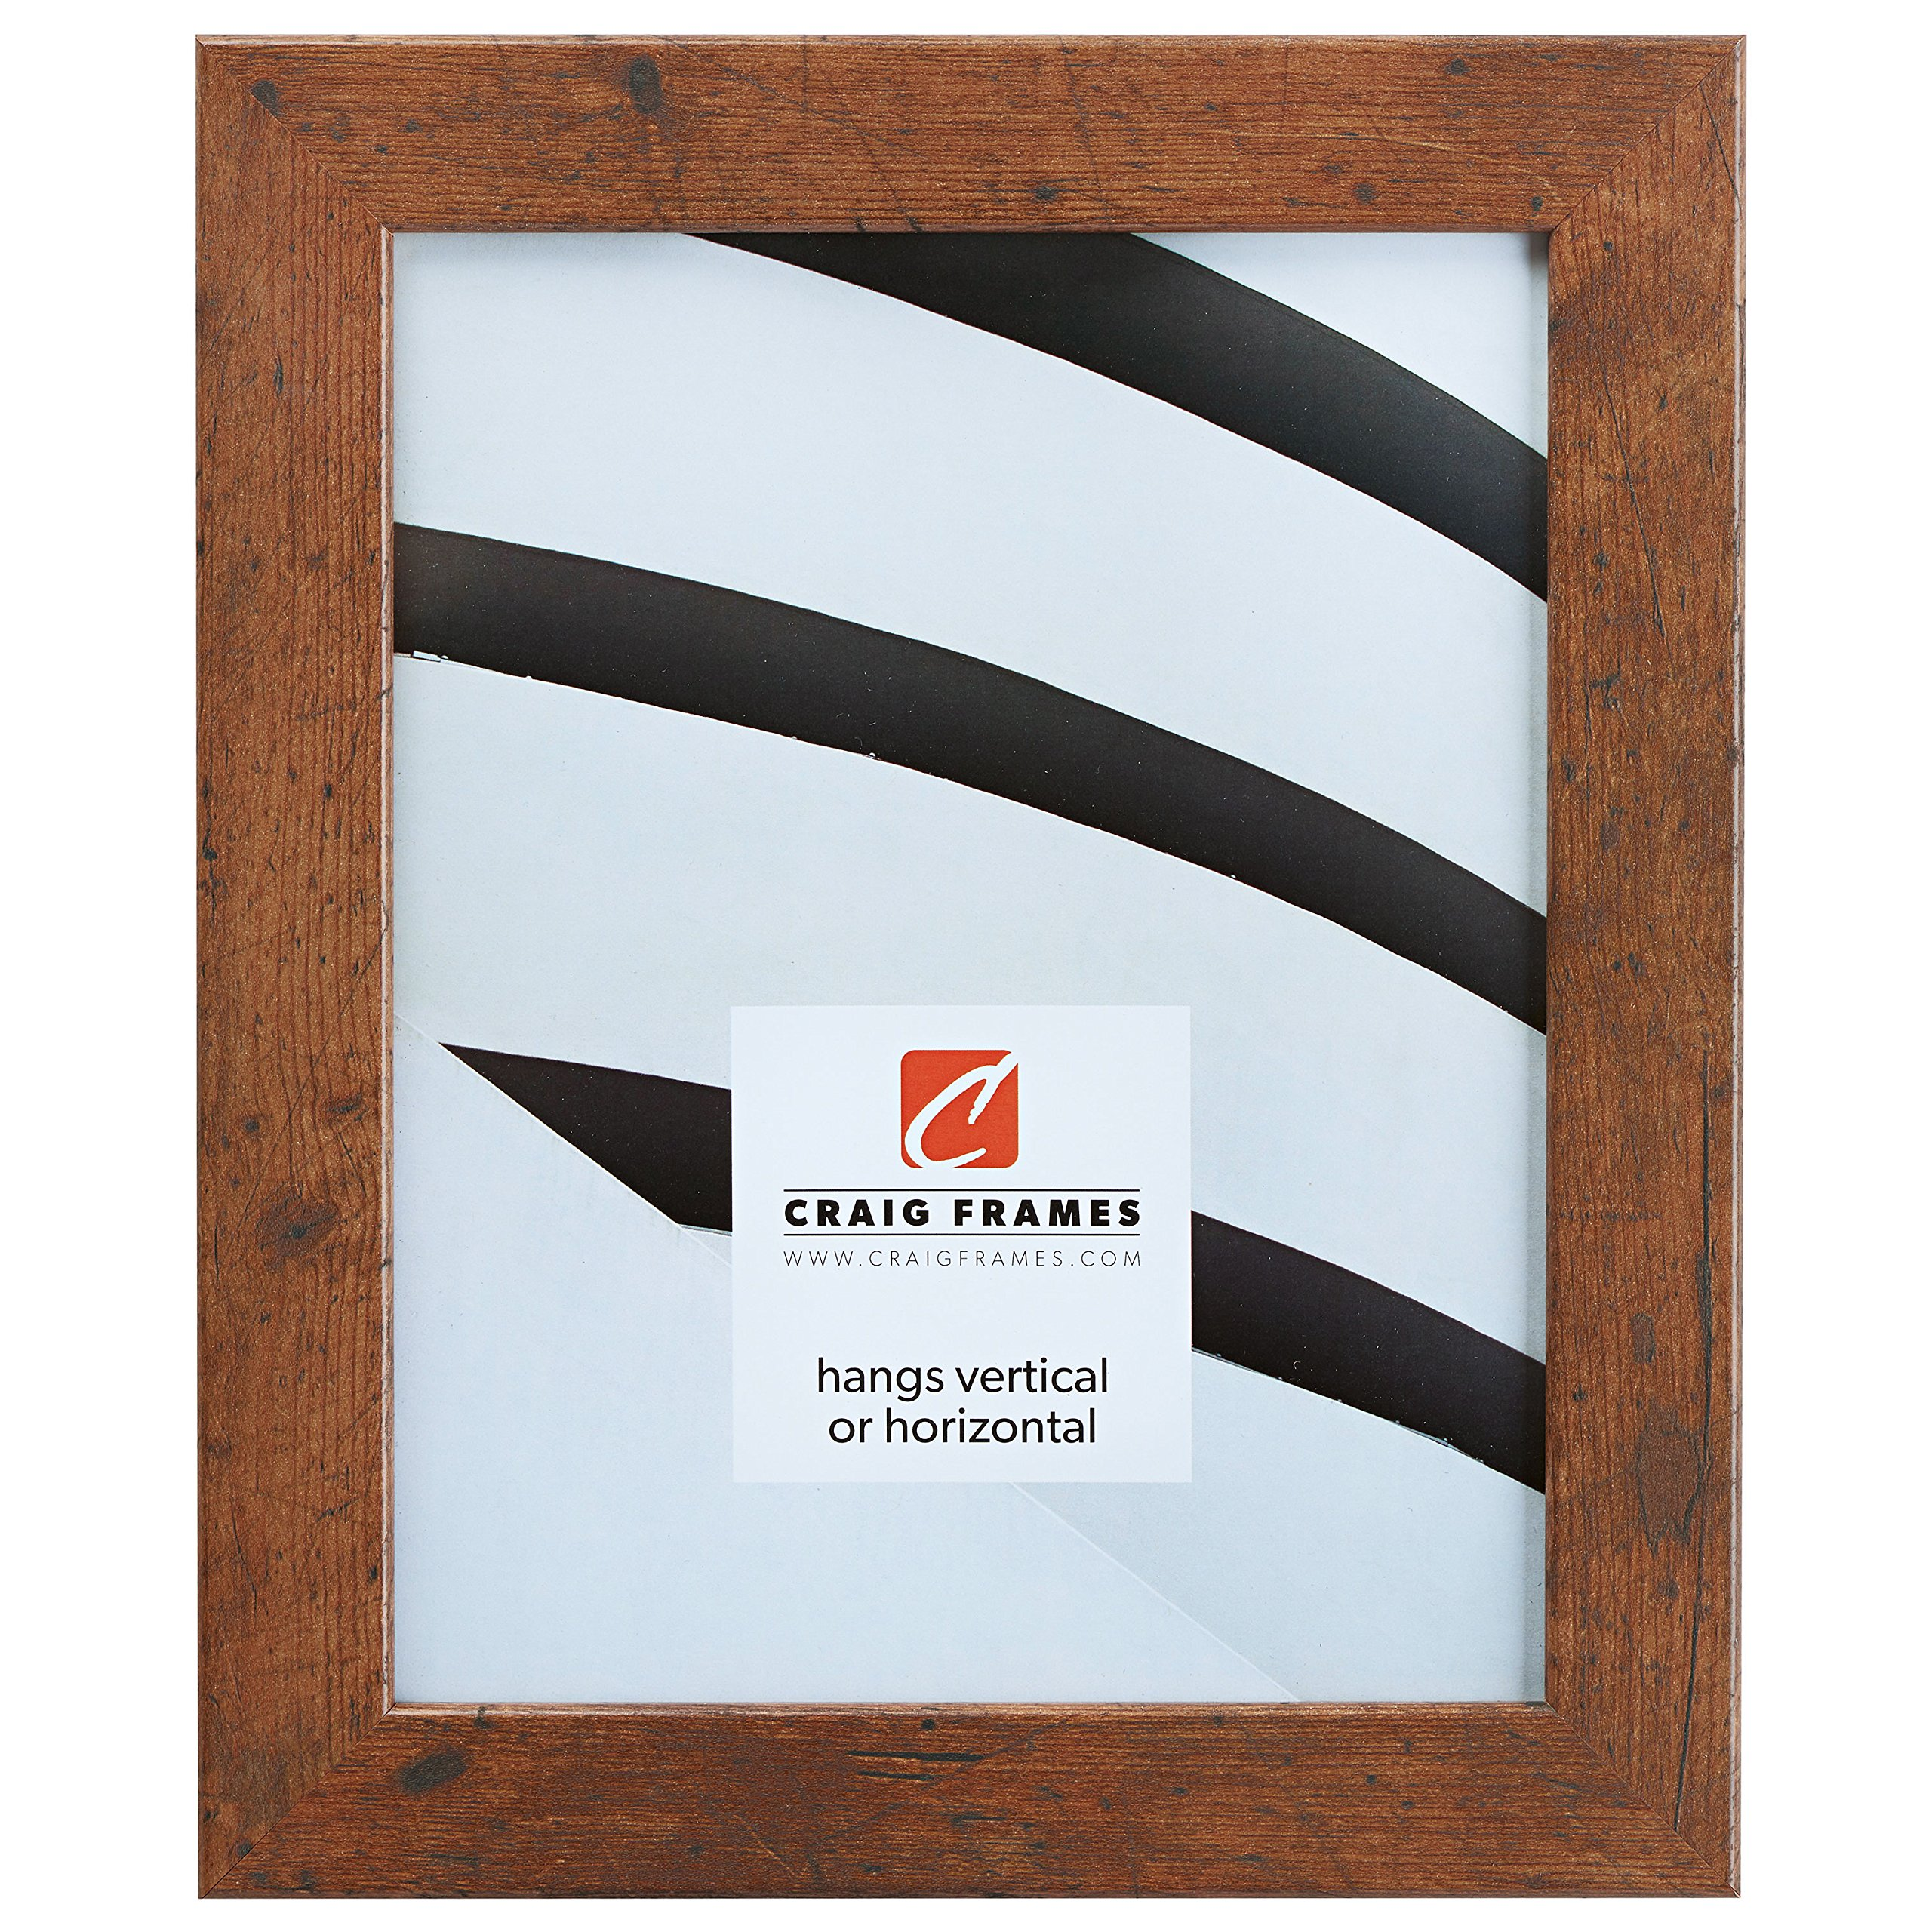 Craig Frames 26011 18 by 24-Inch Picture Frame, Smooth Wrap Finish, 1.26-Inch Wide, Distressed Light Walnut by Craig Frames